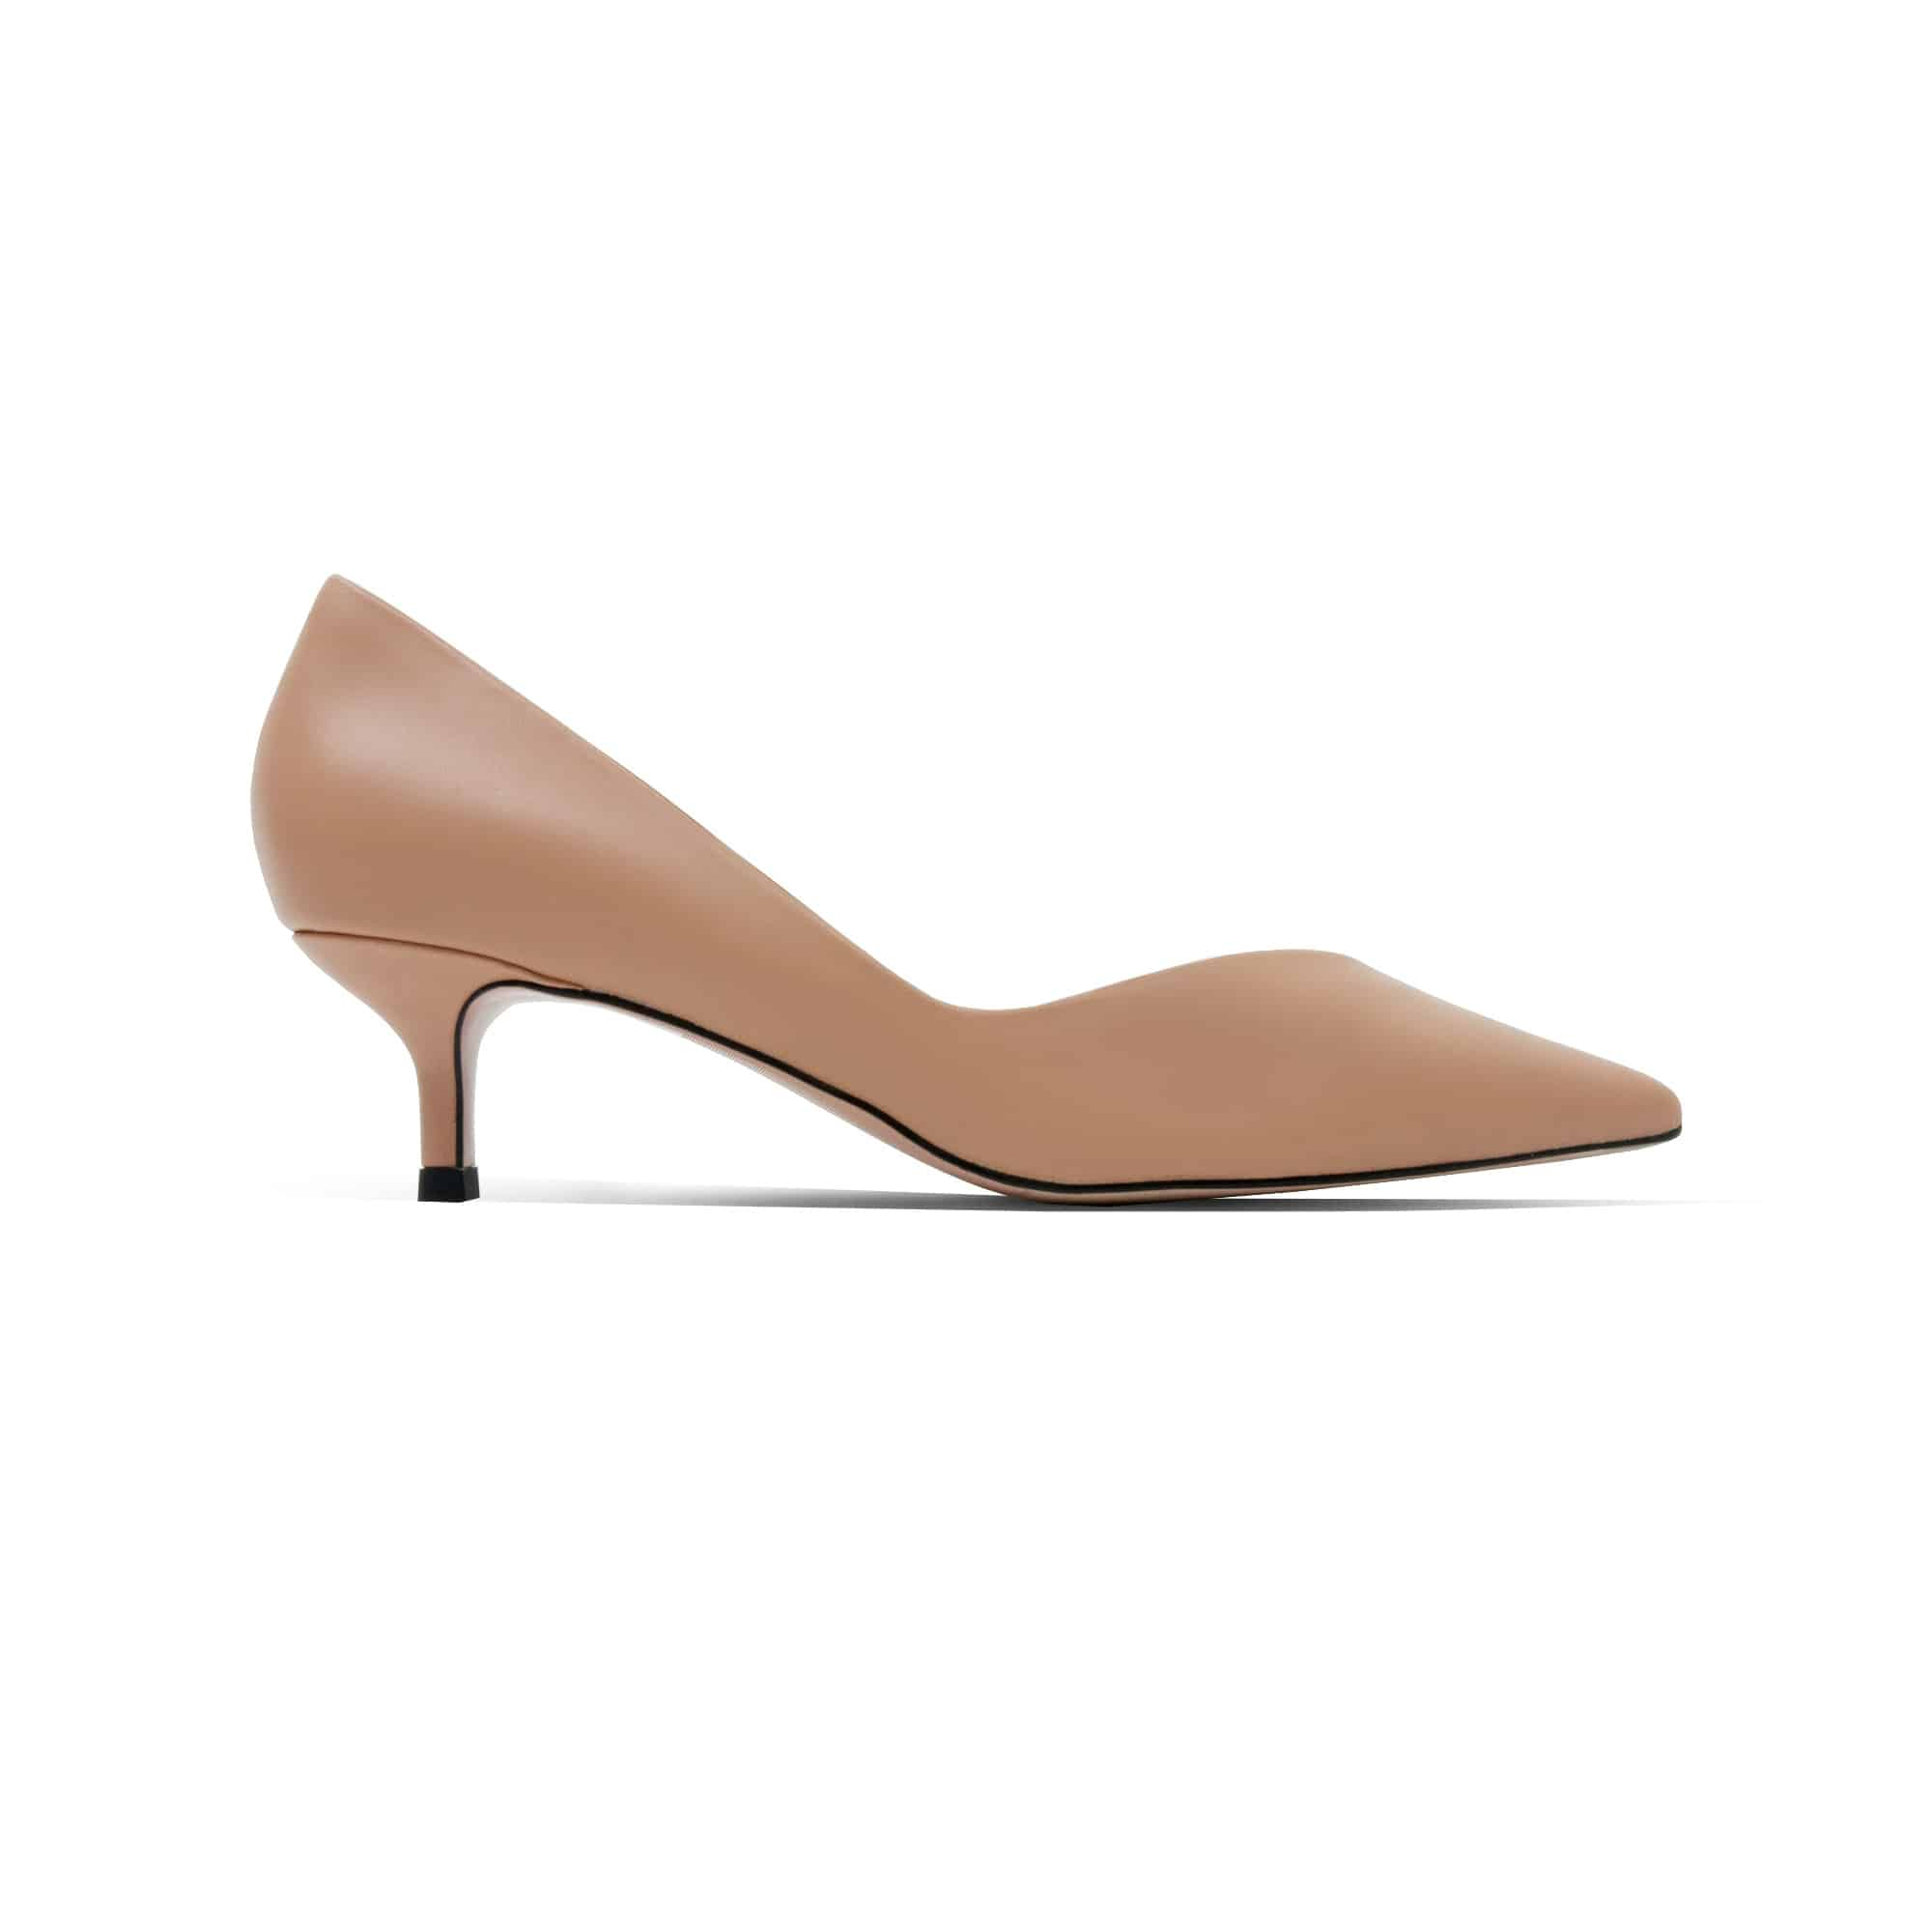 0f7144189ca Rachael Mid Heels (Nude / Lambskin). Soft Lambskin Court Pumps with 2 inch  heels, perfect for walking all day cut-free.